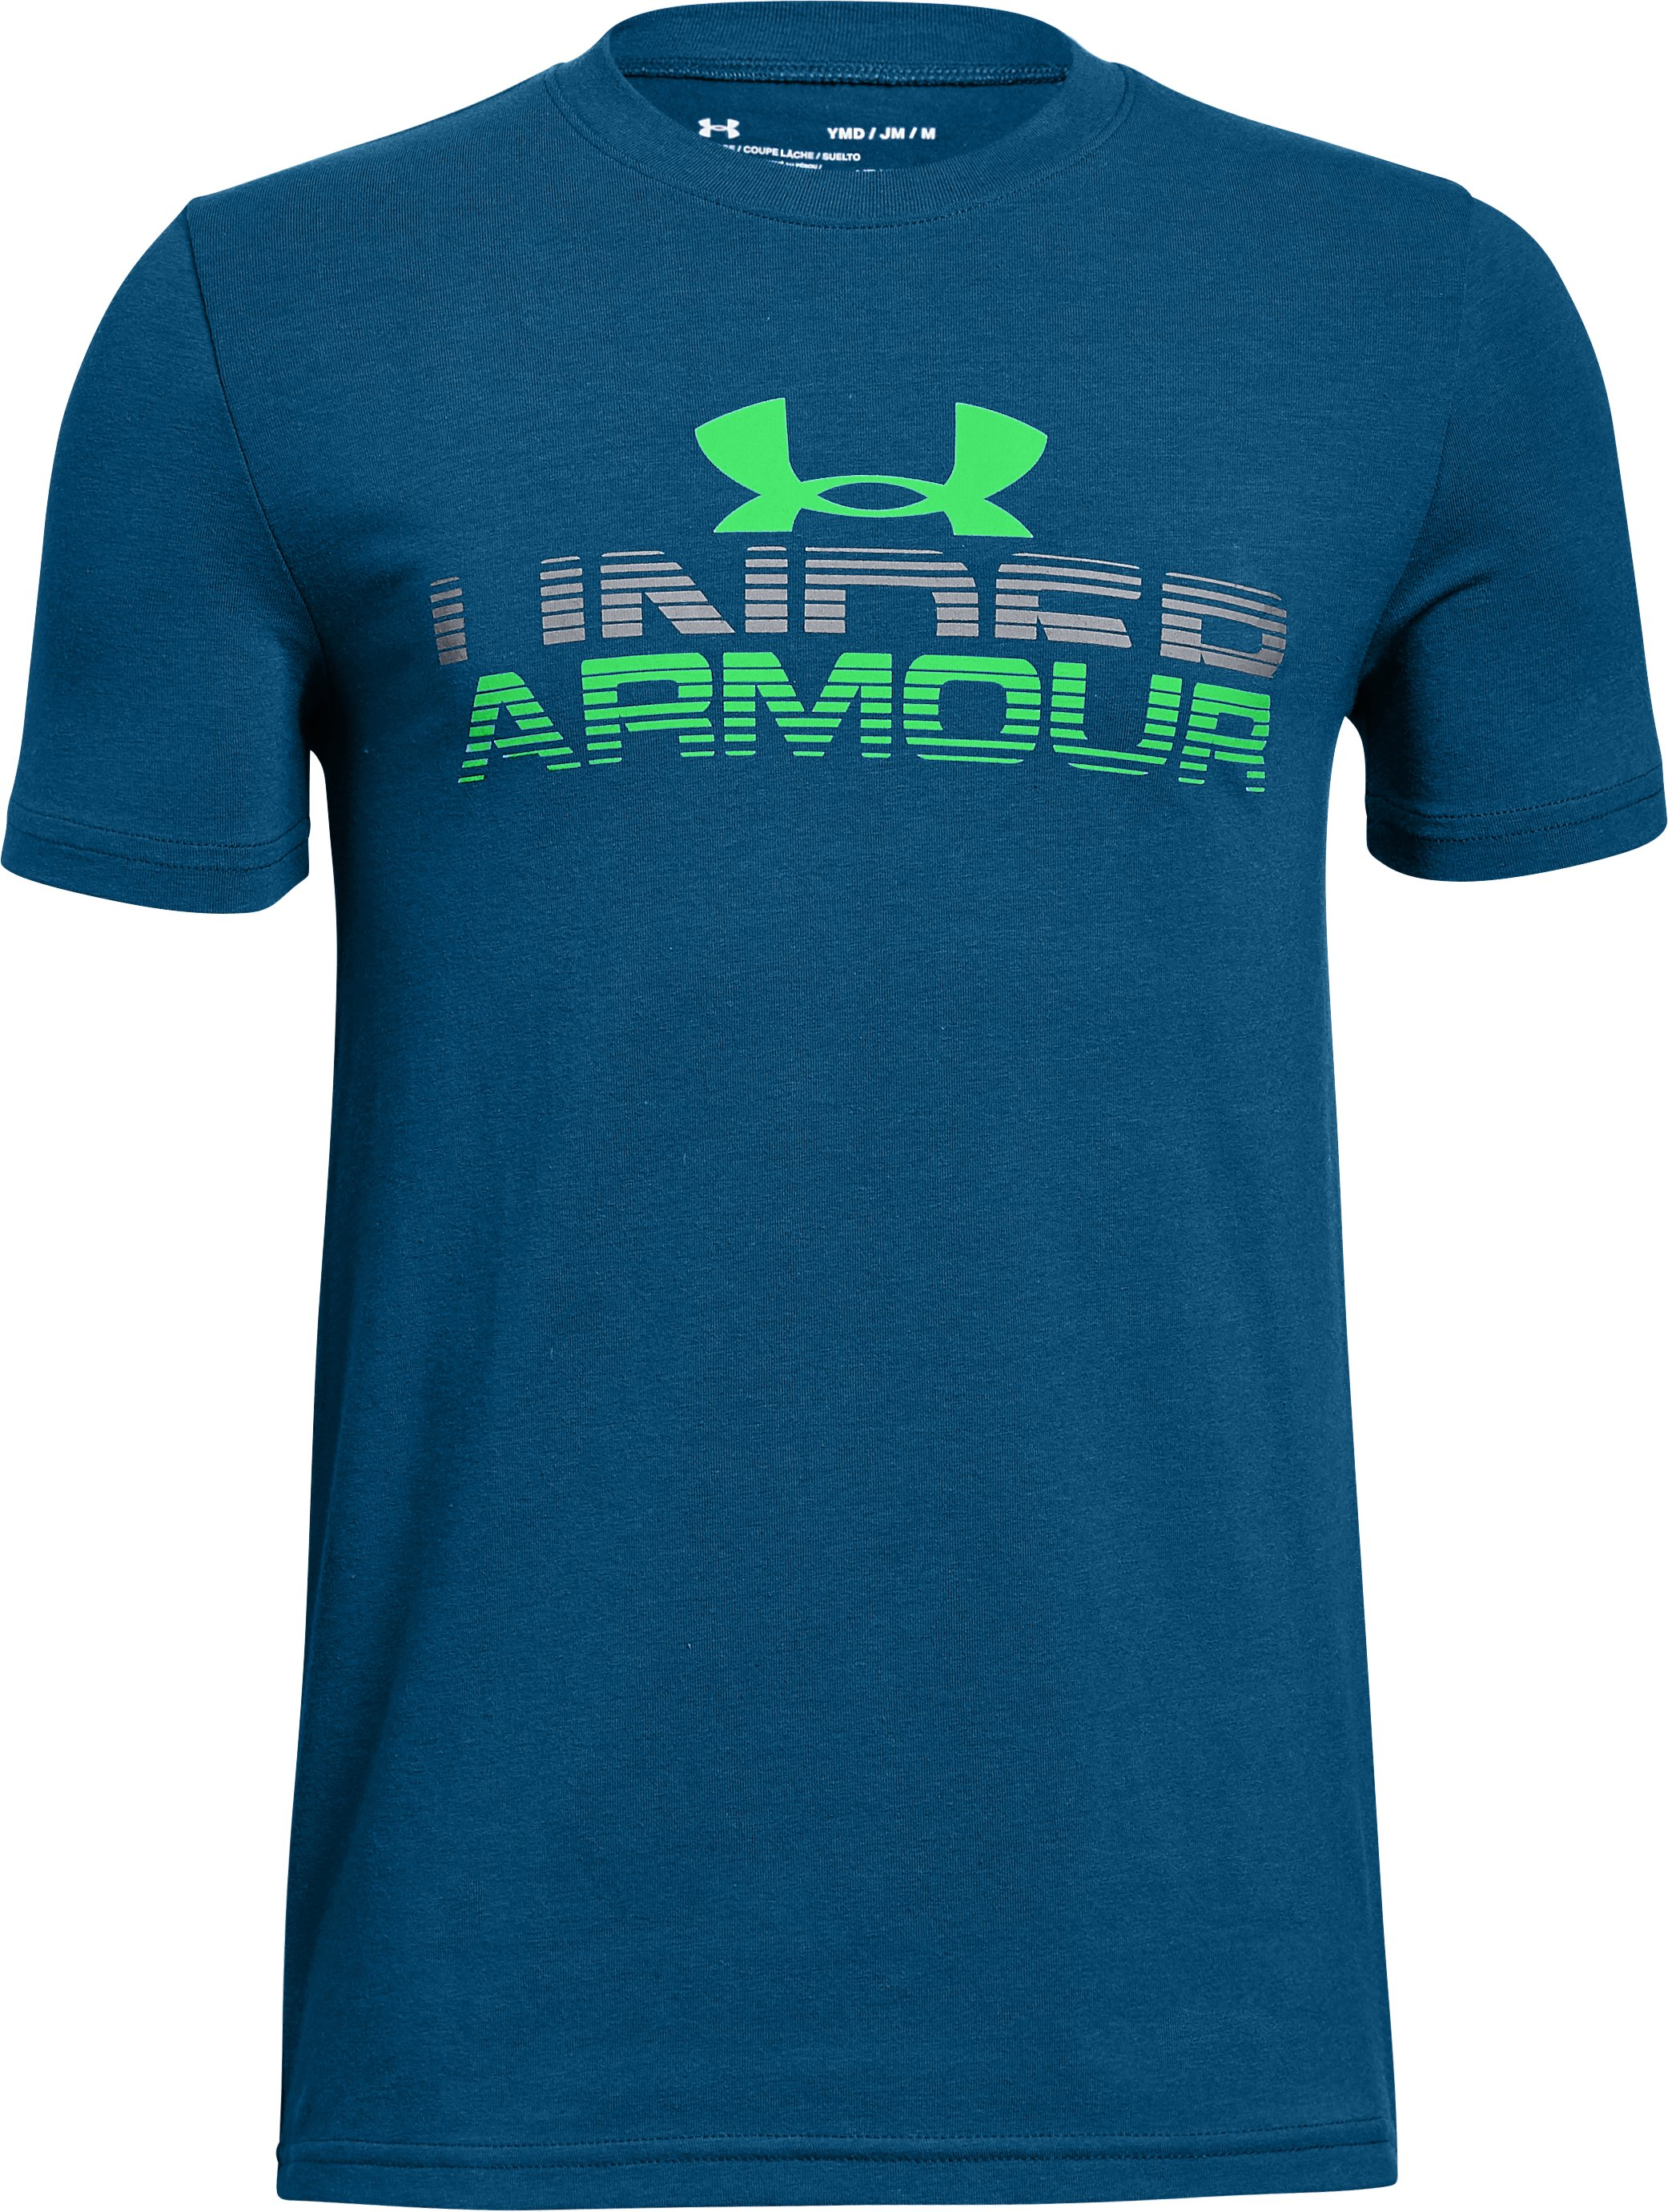 Boys' UA Horizon Logo T-Shirt, MOROCCAN BLUE